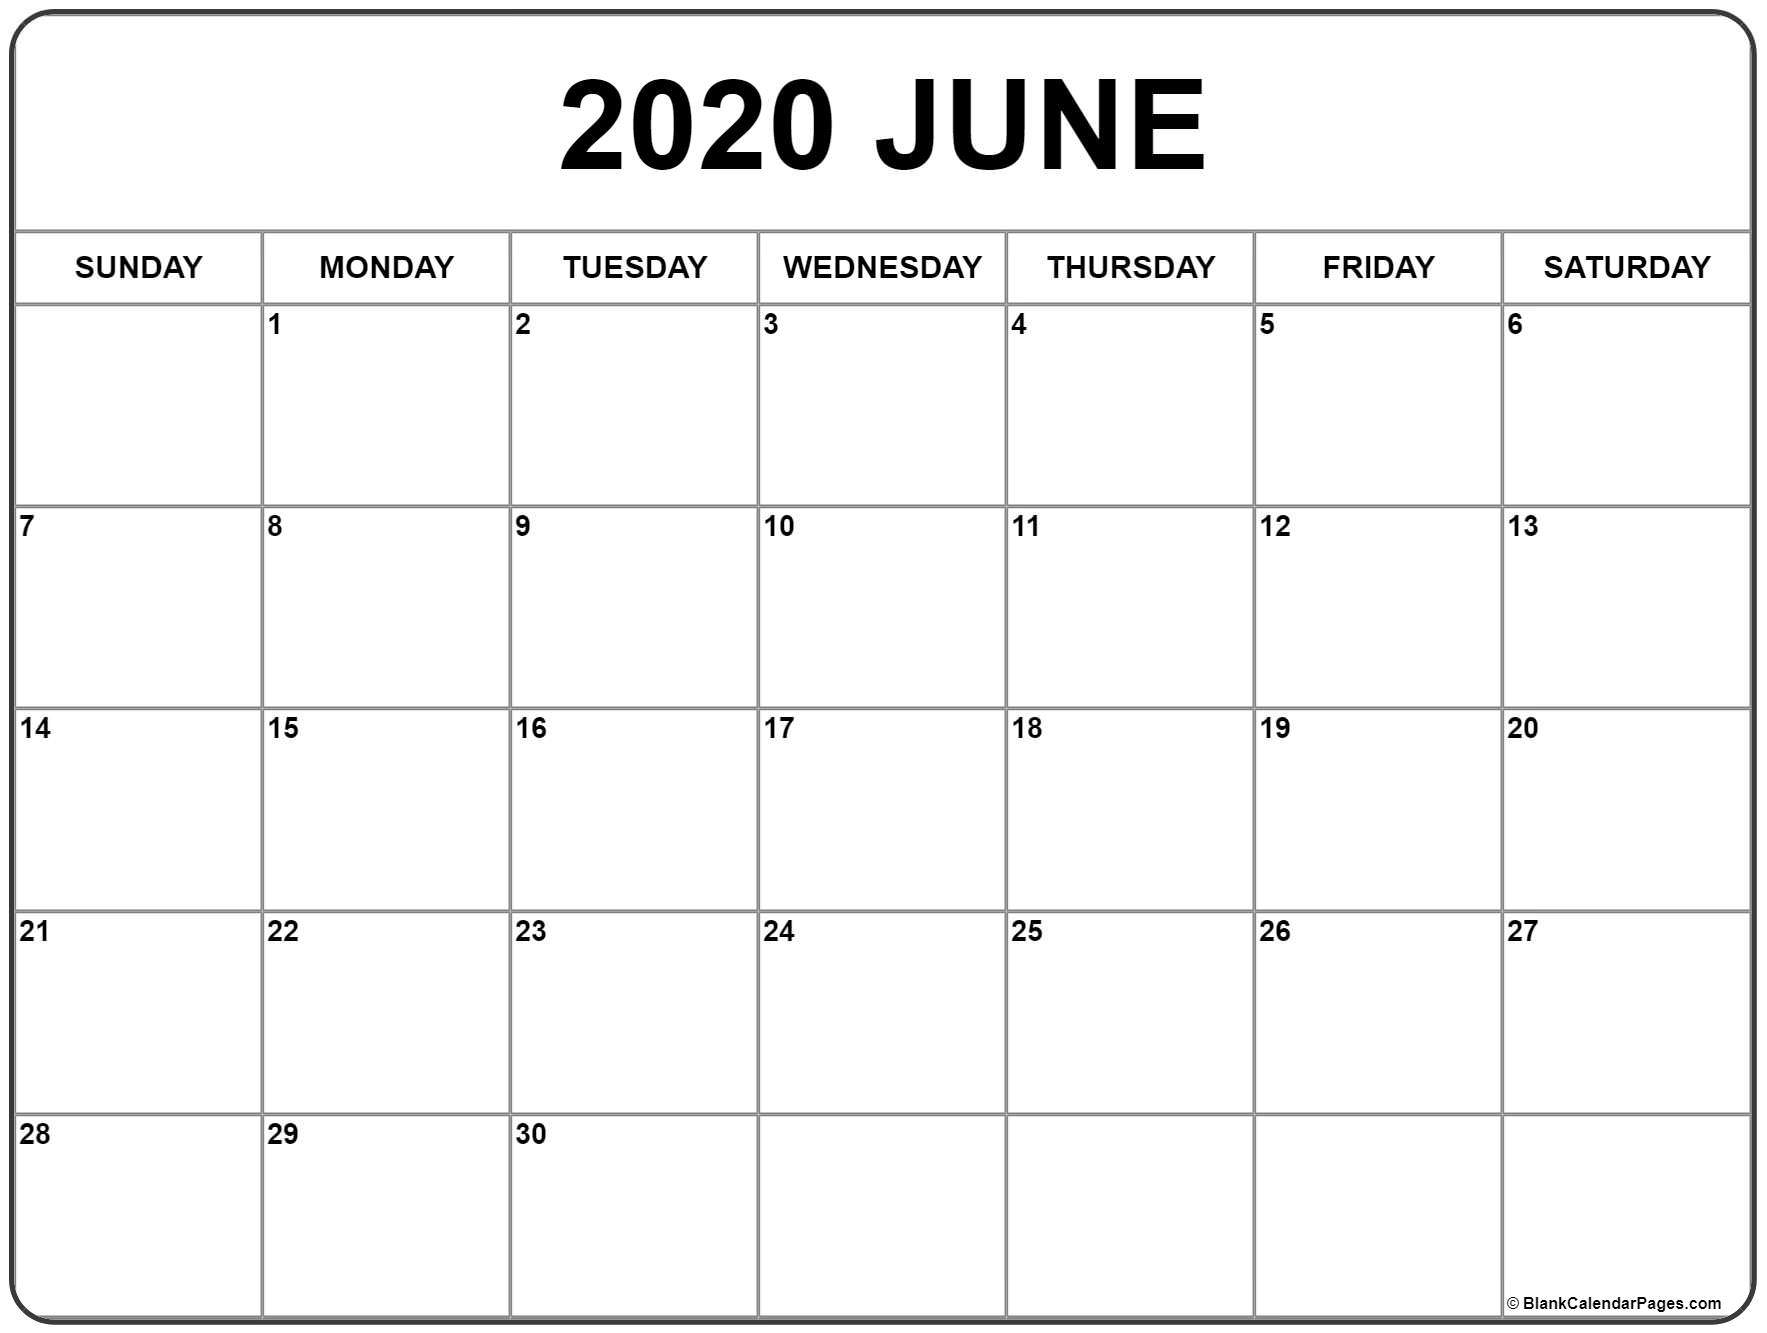 Calendars Michel Zbinden 2020 | Calendar For Planning within Michel Zbinden Calendar